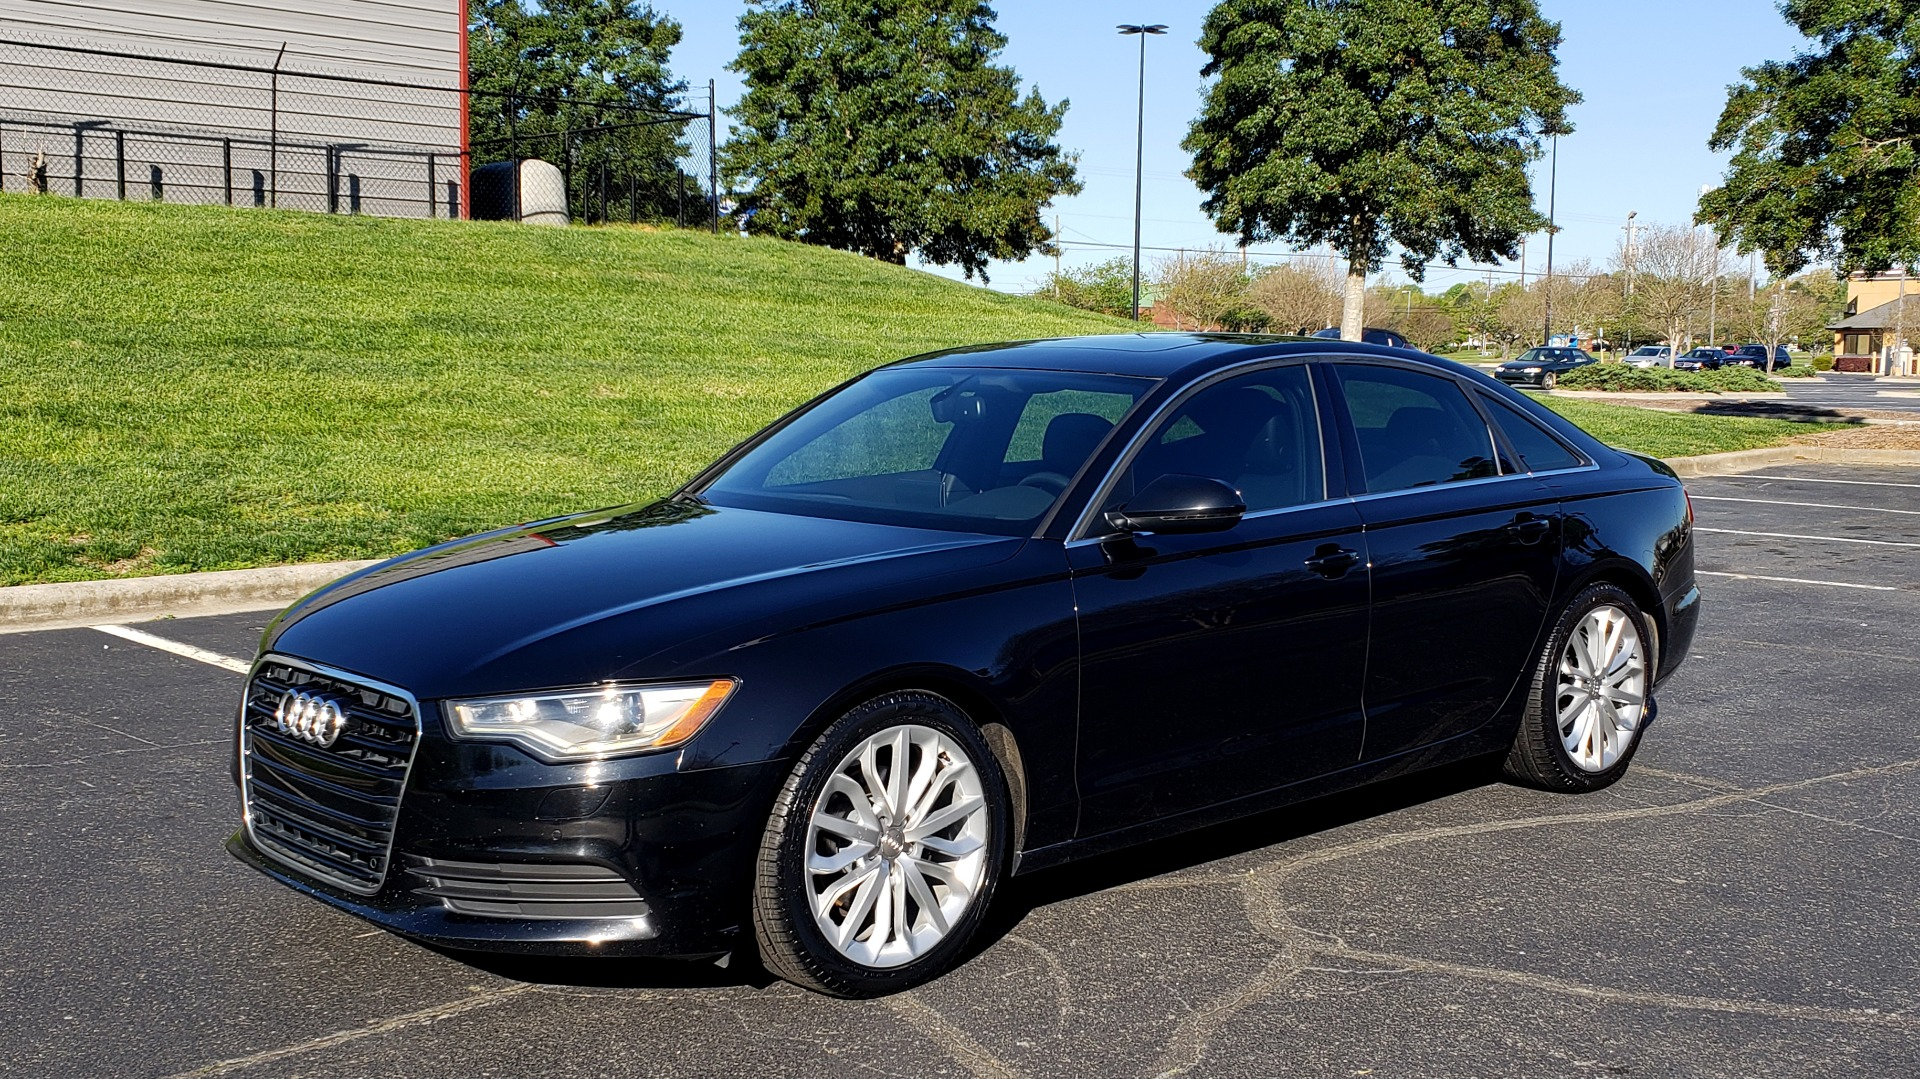 Used 2012 Audi A6 2.0T PREMIUM PLUS / NAV / SNRF / CVT TRANS / REARVIEW for sale Sold at Formula Imports in Charlotte NC 28227 1